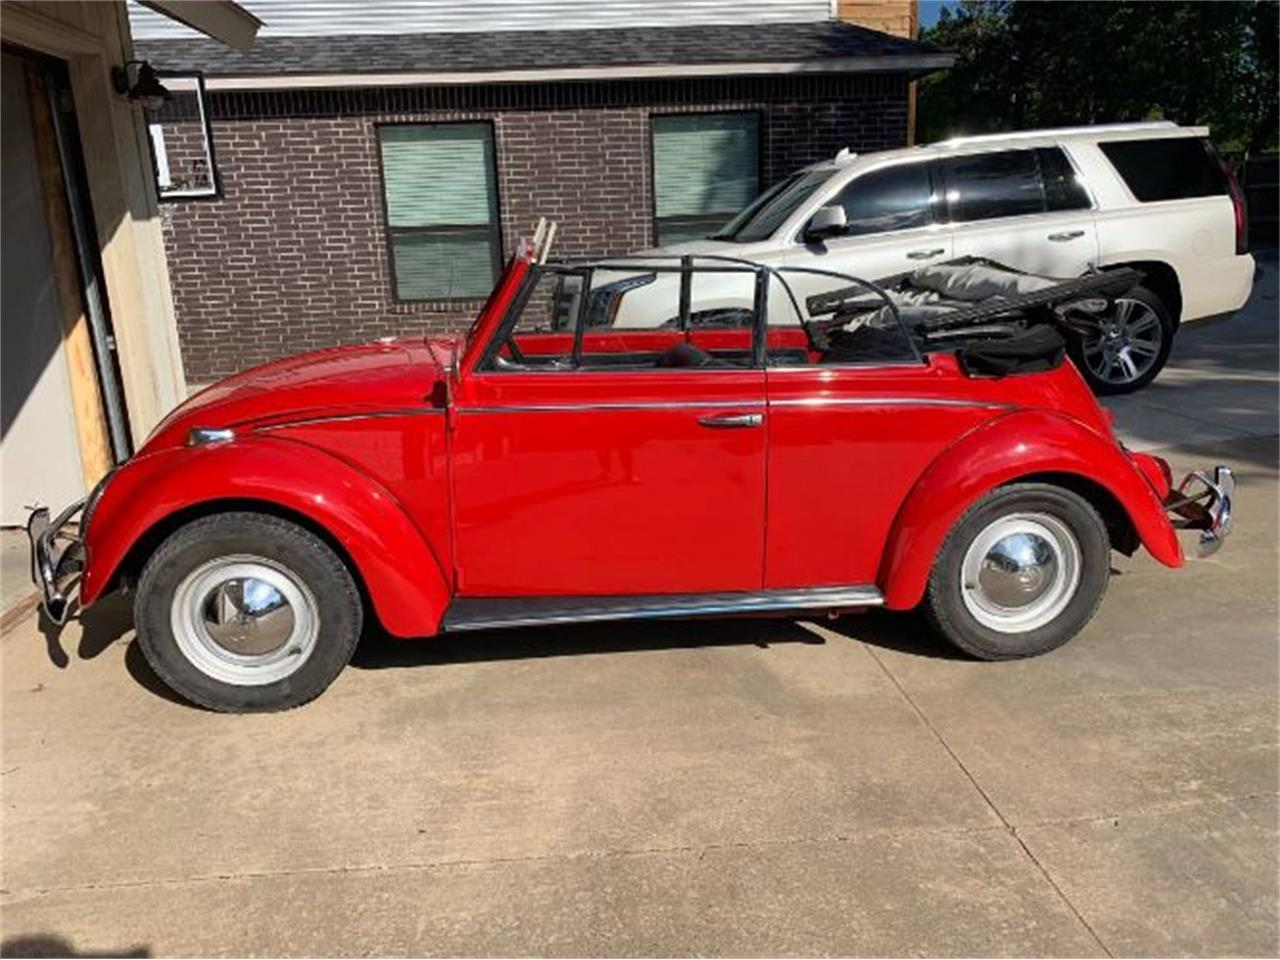 Large Picture of Classic '65 Volkswagen Beetle located in Michigan - $21,995.00 - Q58P